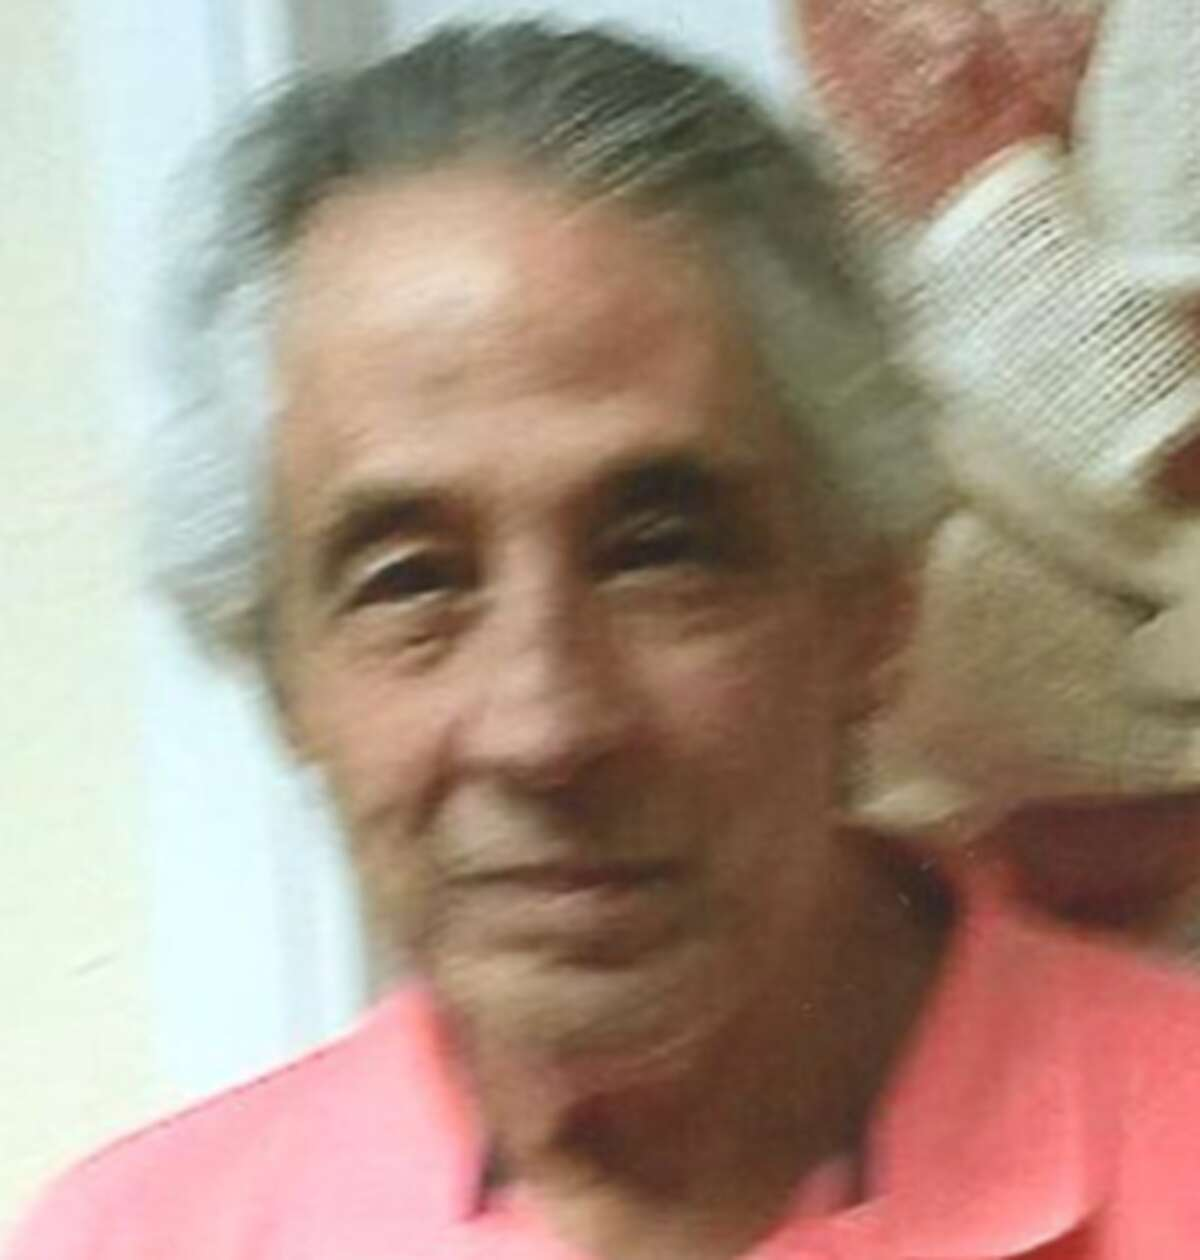 Abel Paredes Jr. was last seen April 3 in the 8600 block of Fredericksburg Road. Police say he suffers from a medical condition that requires he take medication.